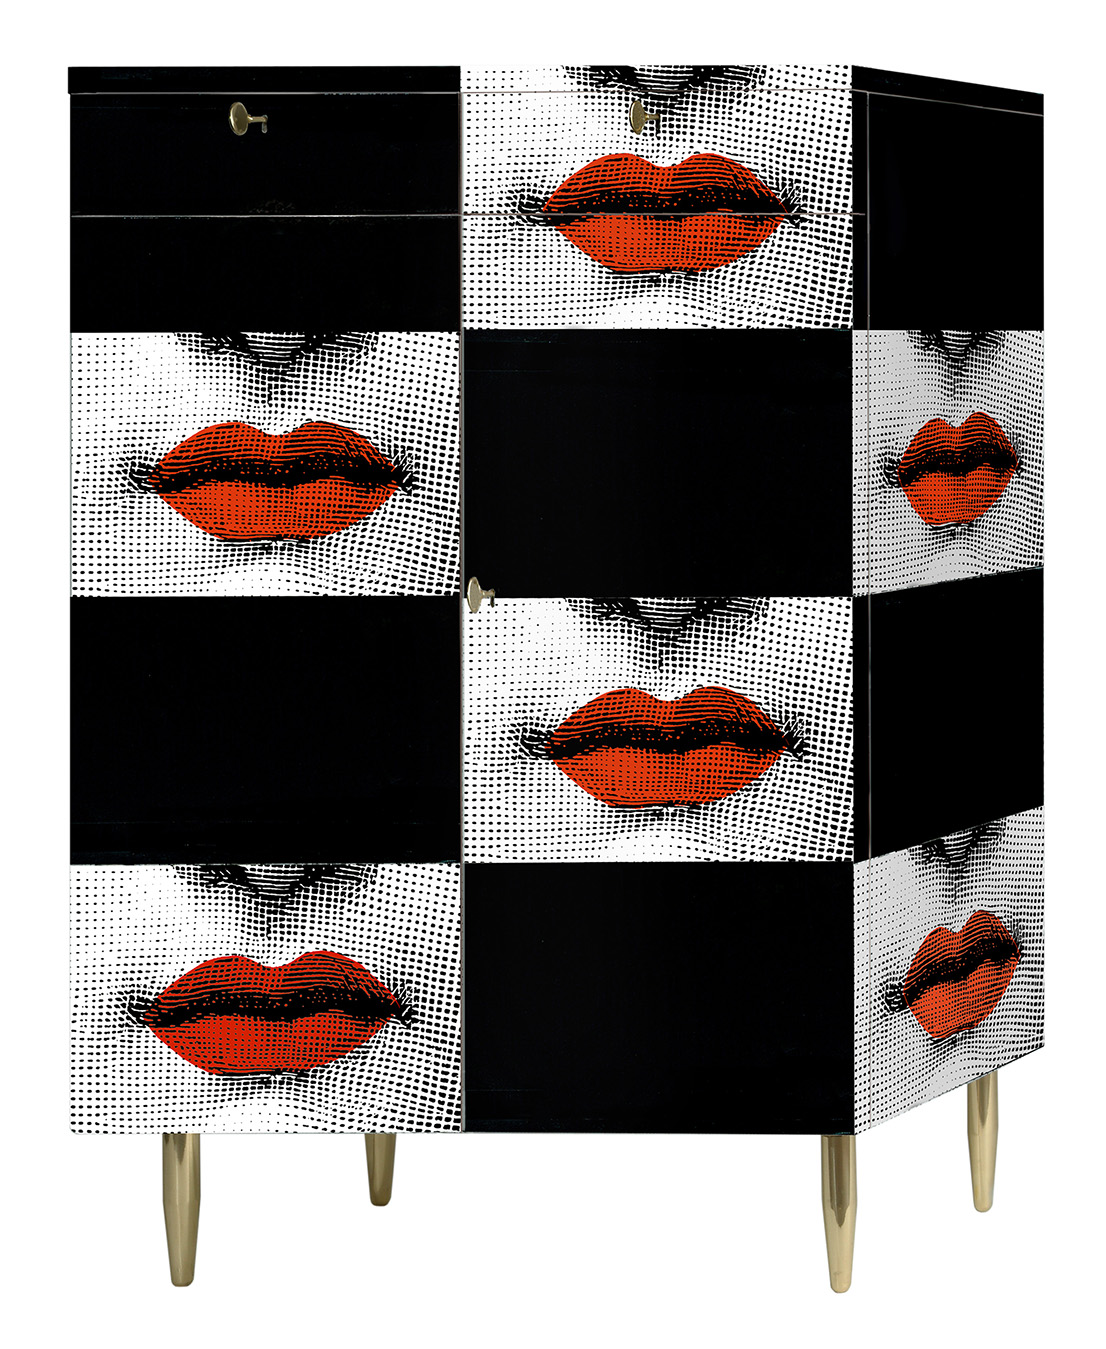 Kiss, design by Barnaba Fornasetti, 2006.